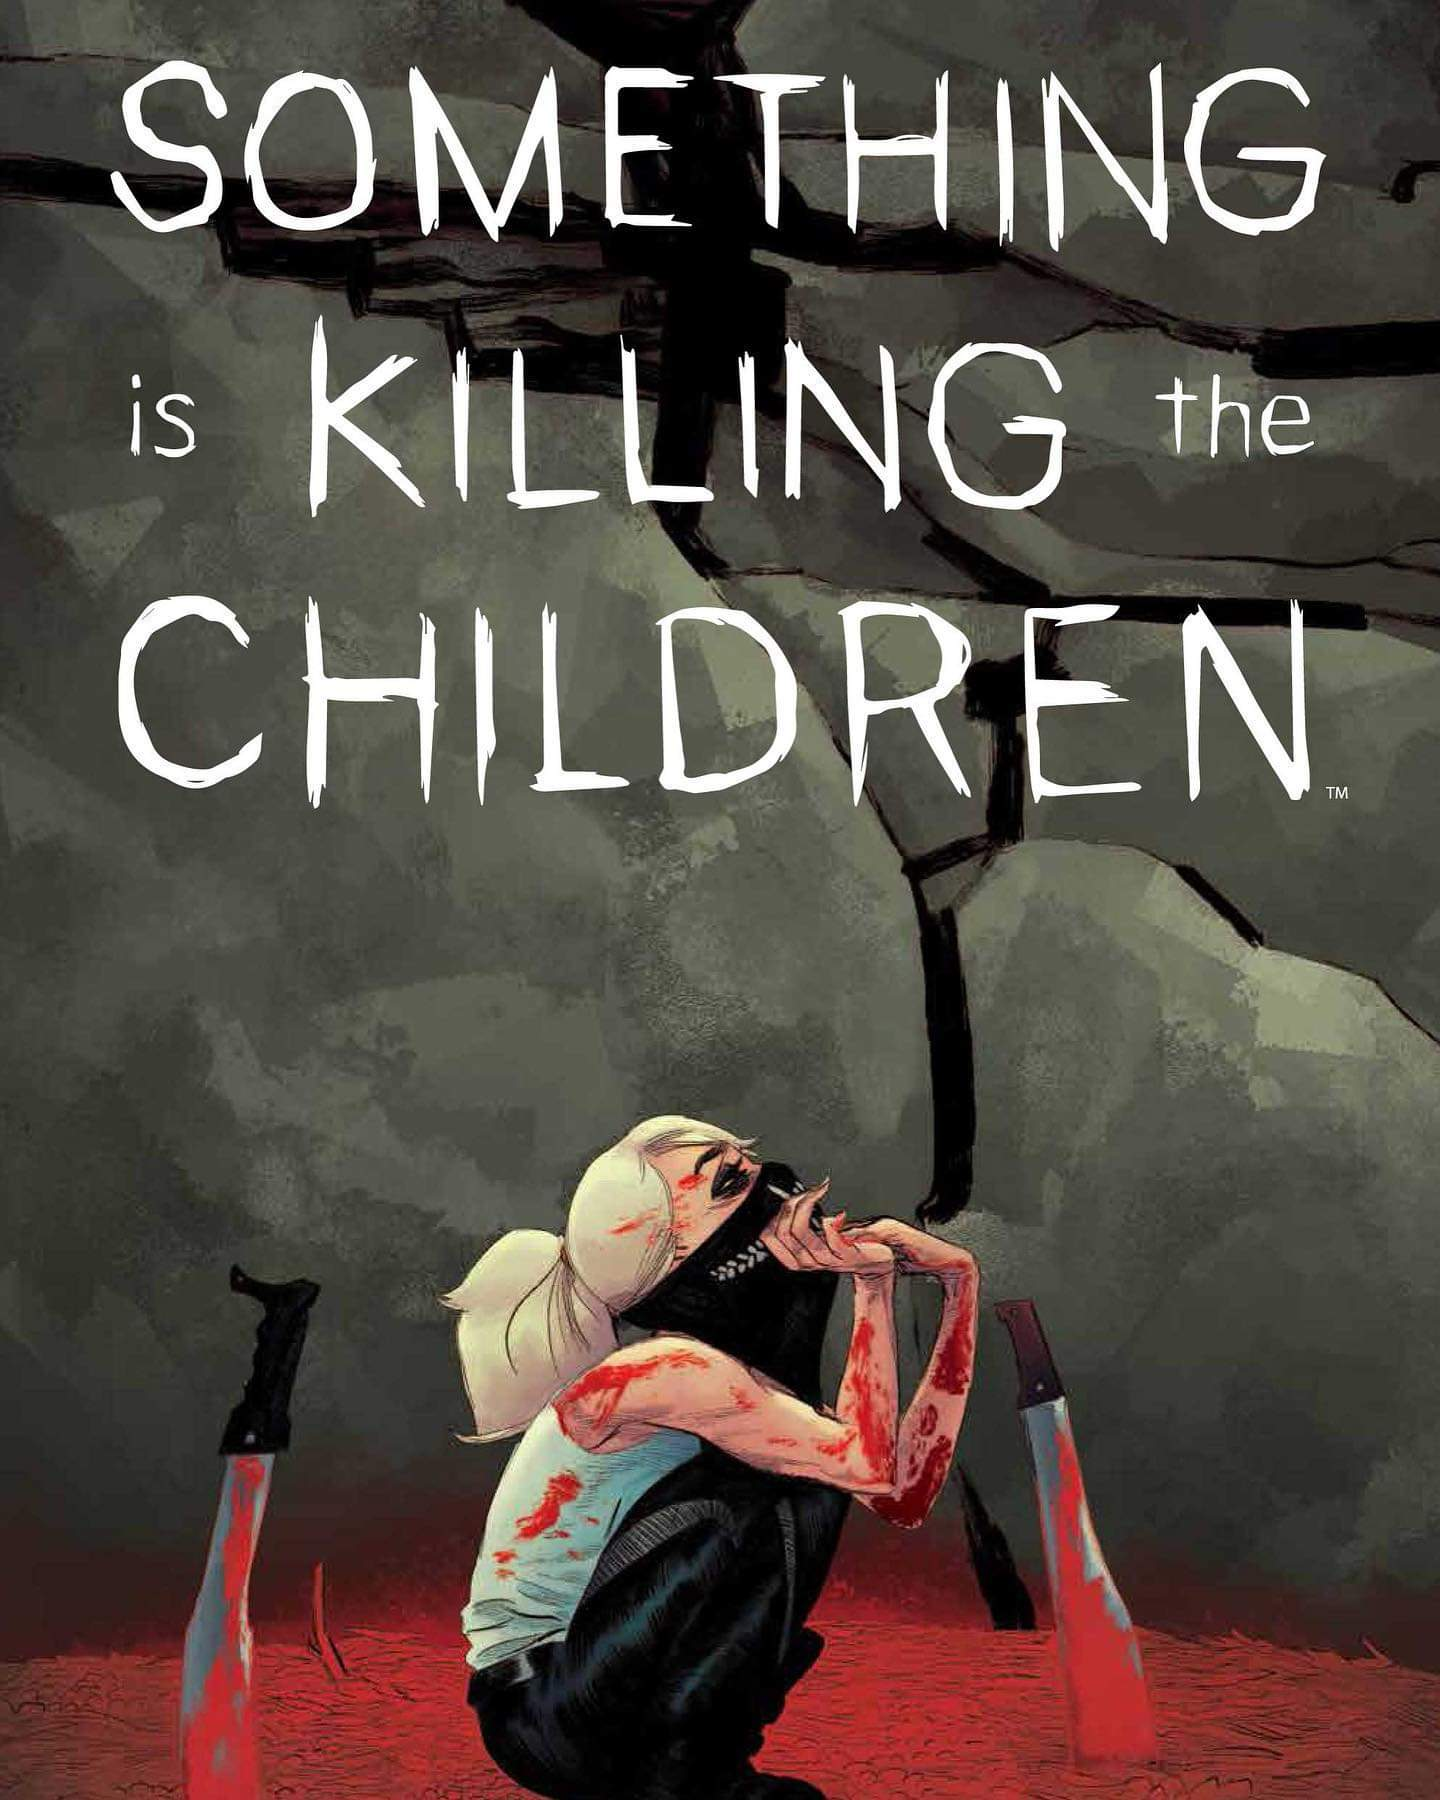 04/15/2020 SOMETHING IS KILLING CHILDREN #7 (NEW RELEASE DATE 06/10/2020)